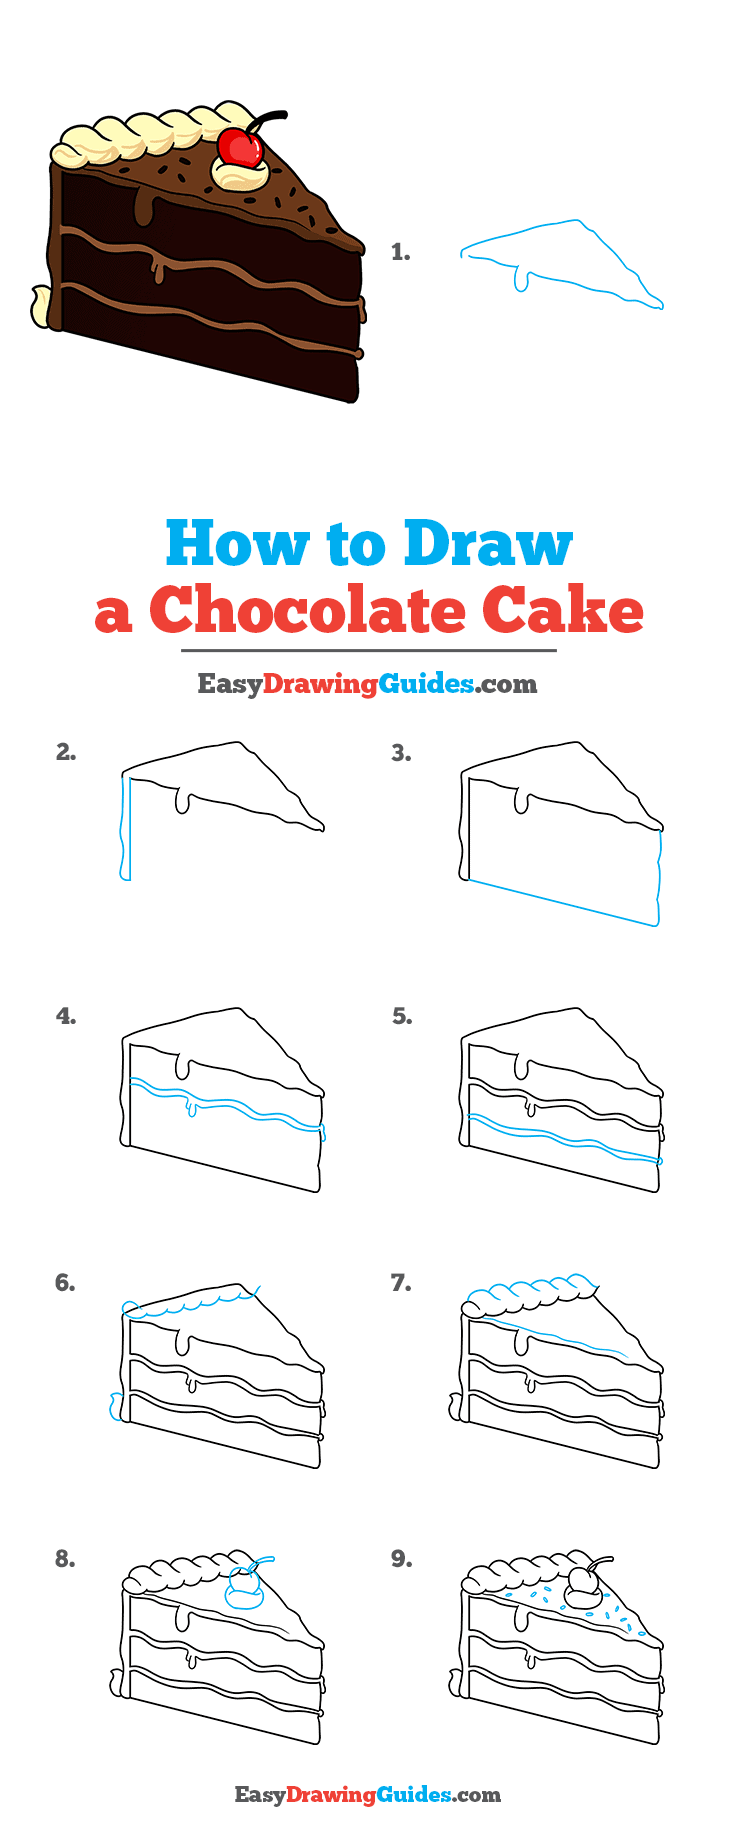 How to Draw a Chocolate Cake Step by Step Tutorial Image